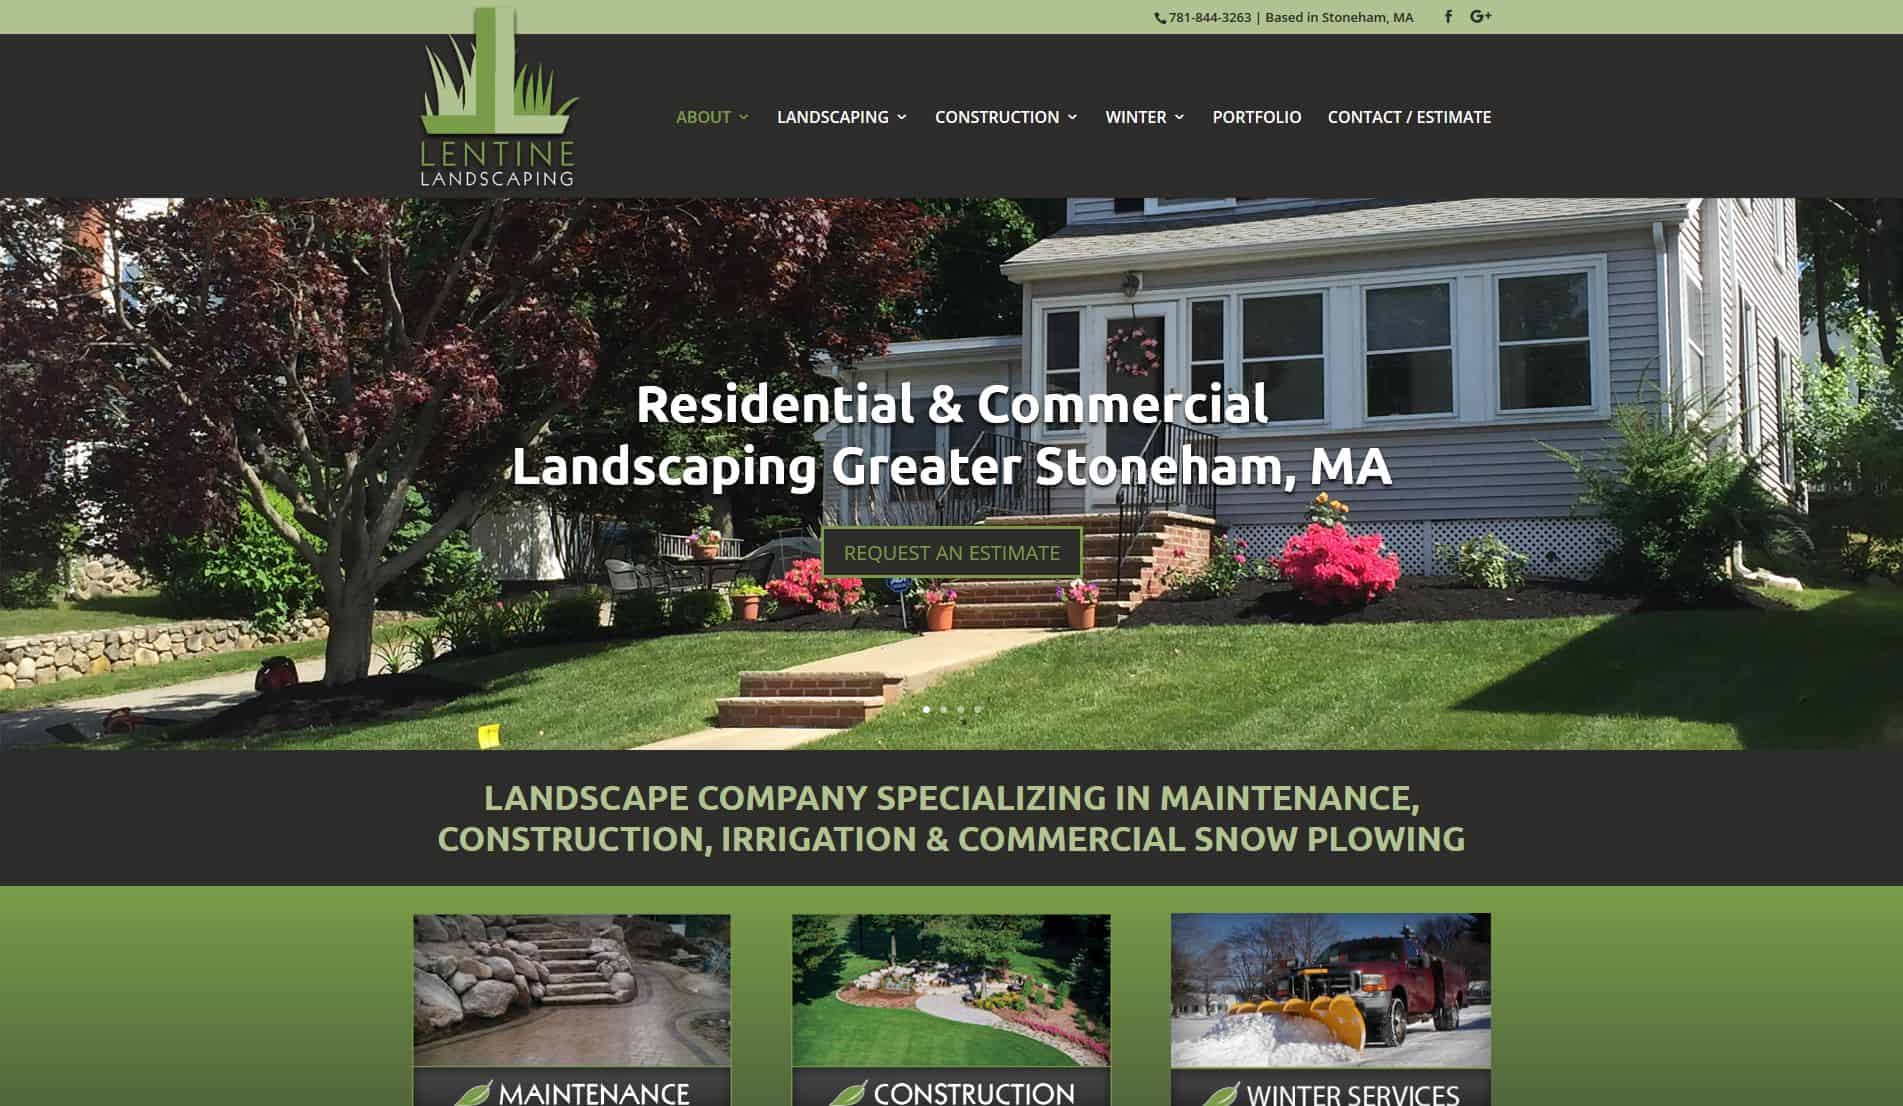 Cool Landscape Website Design - Landscape Web Design Company regarding Landscape Design Company